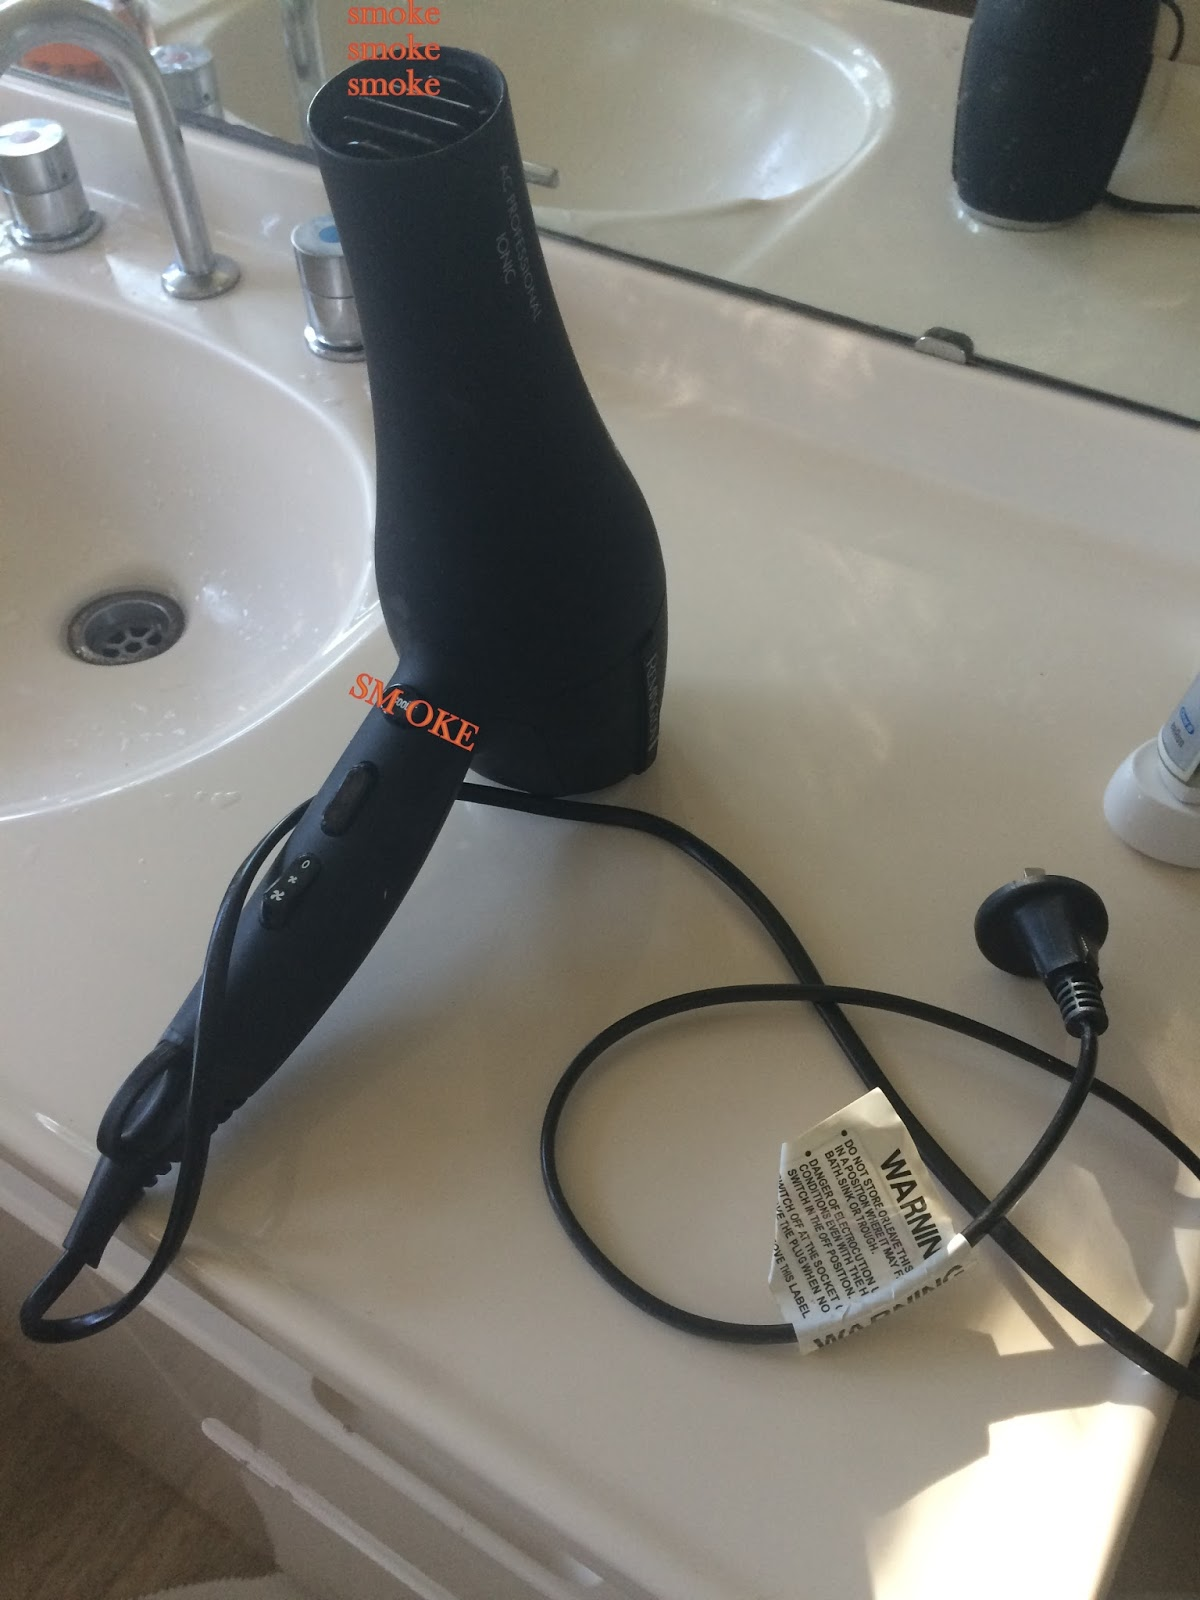 Where there's Smoke - Or Why I Need a Dyson Hair Dryer